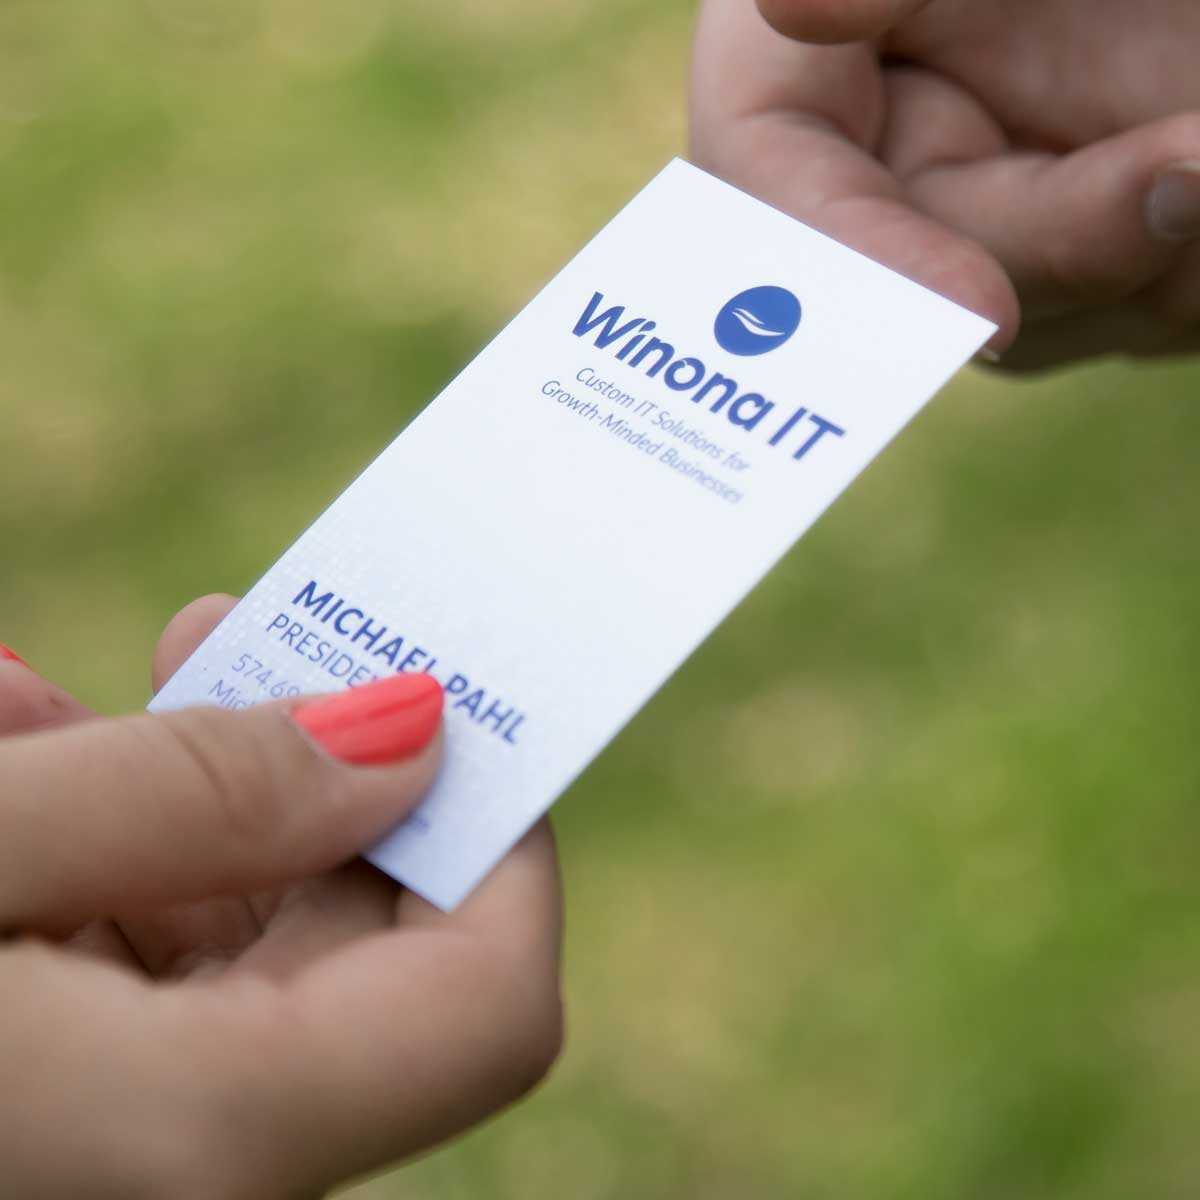 Handing off a business card to provide a point of contact for help with IT strategies.